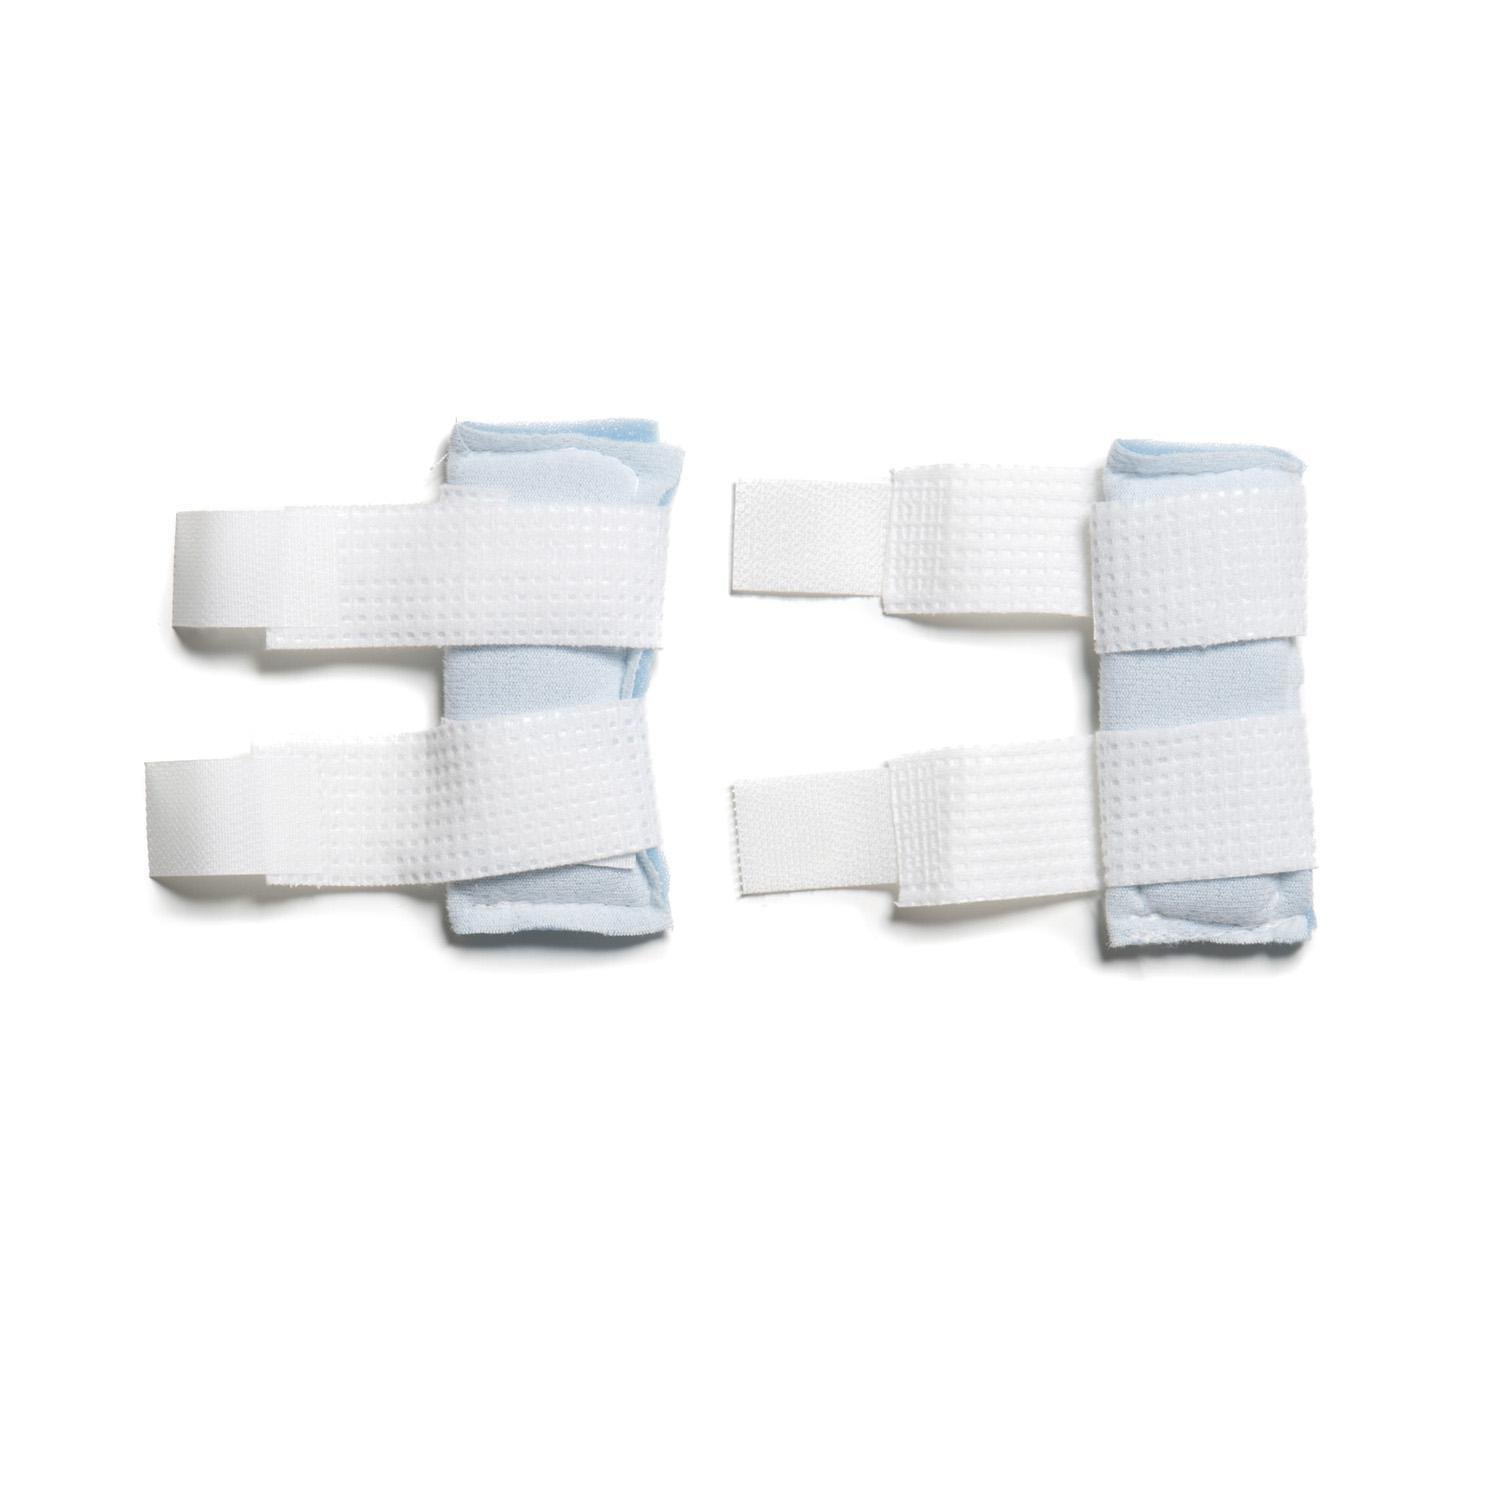 Halyard Health 29965 Health Care I.V. Support, Neonatal (Case of 30)